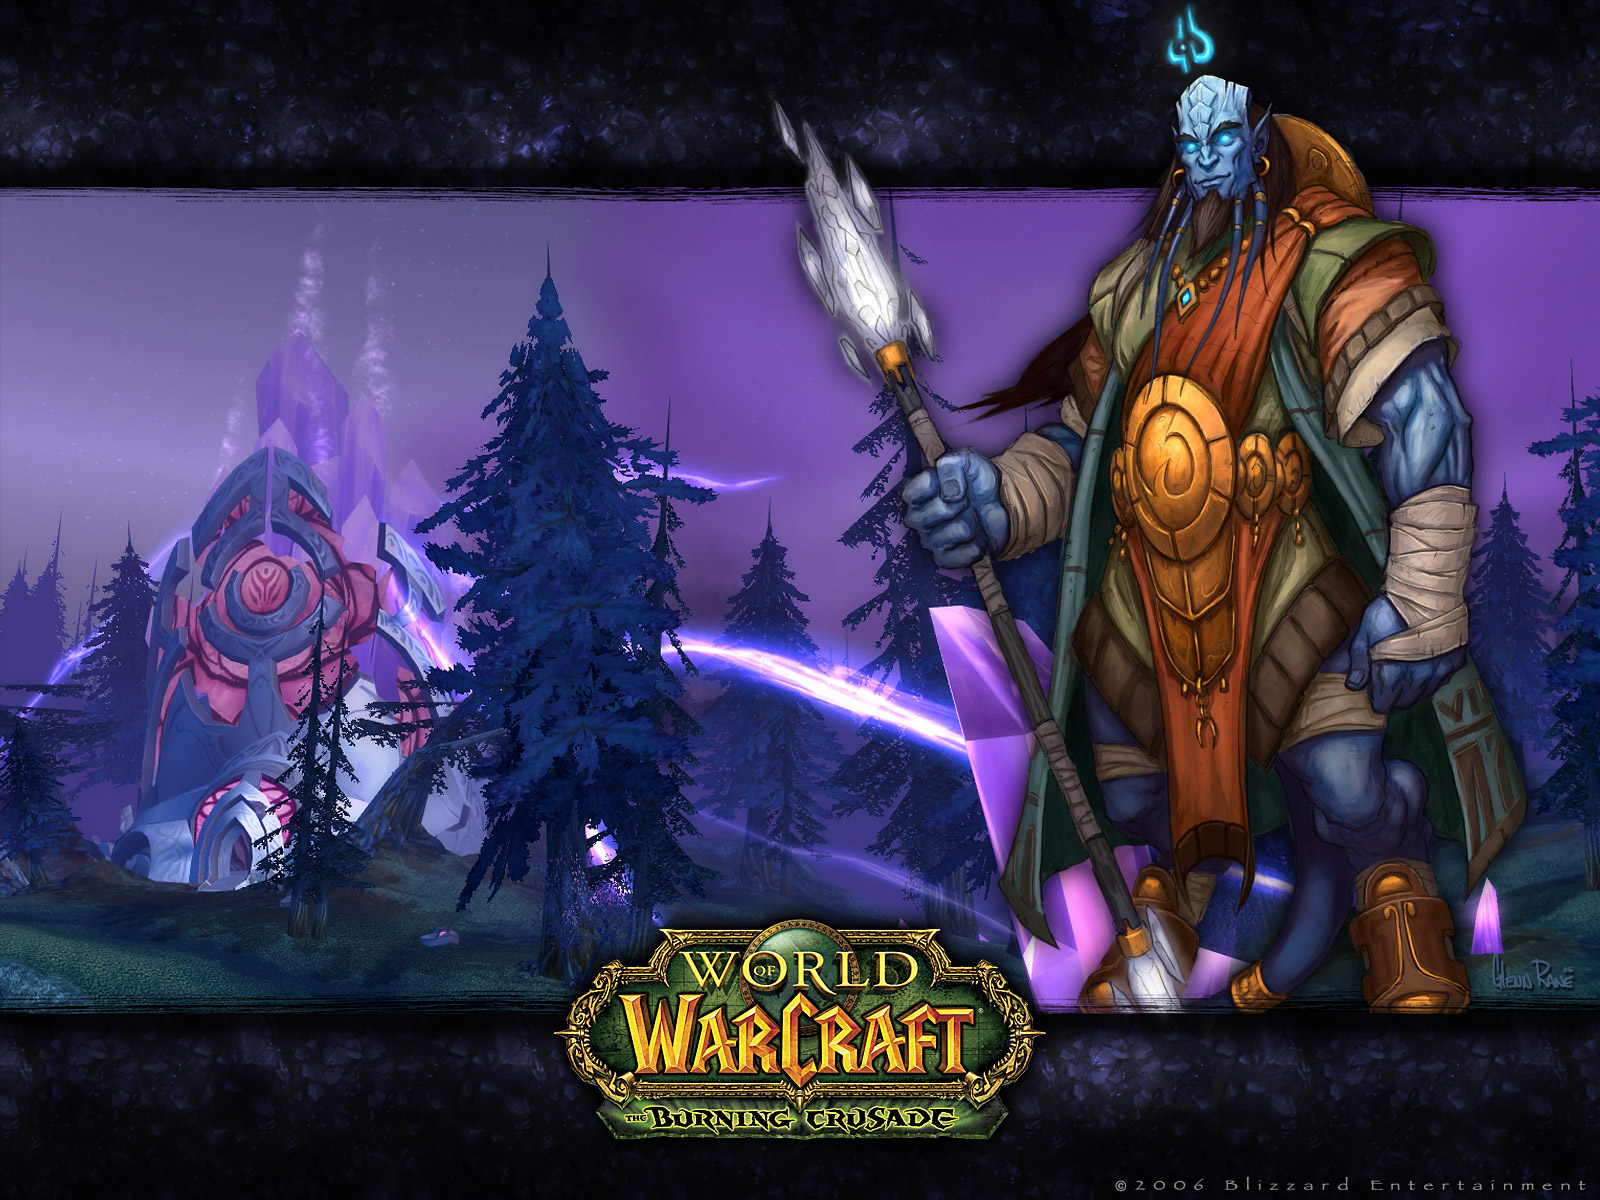 Game Бесплатно HD for Wallpapers. Игры wow tbc 006.